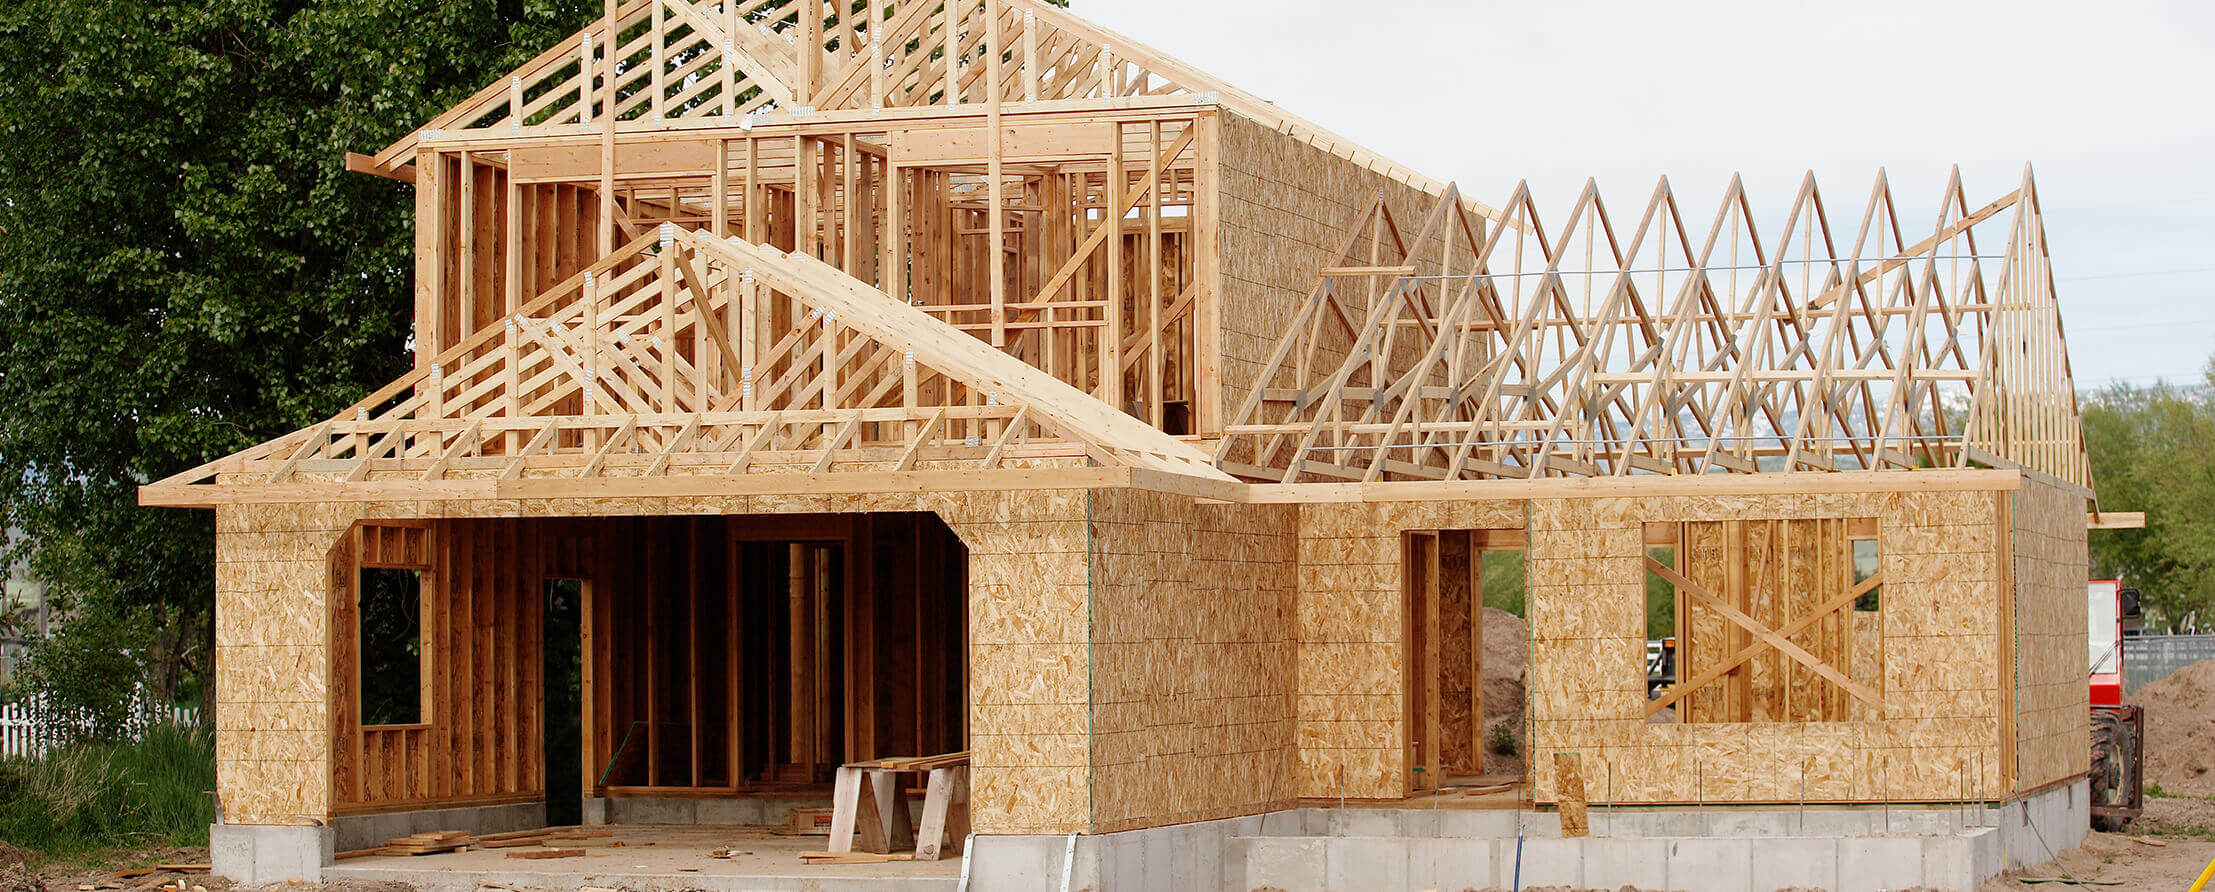 Rafters and lumber framing of a new home during the construction process